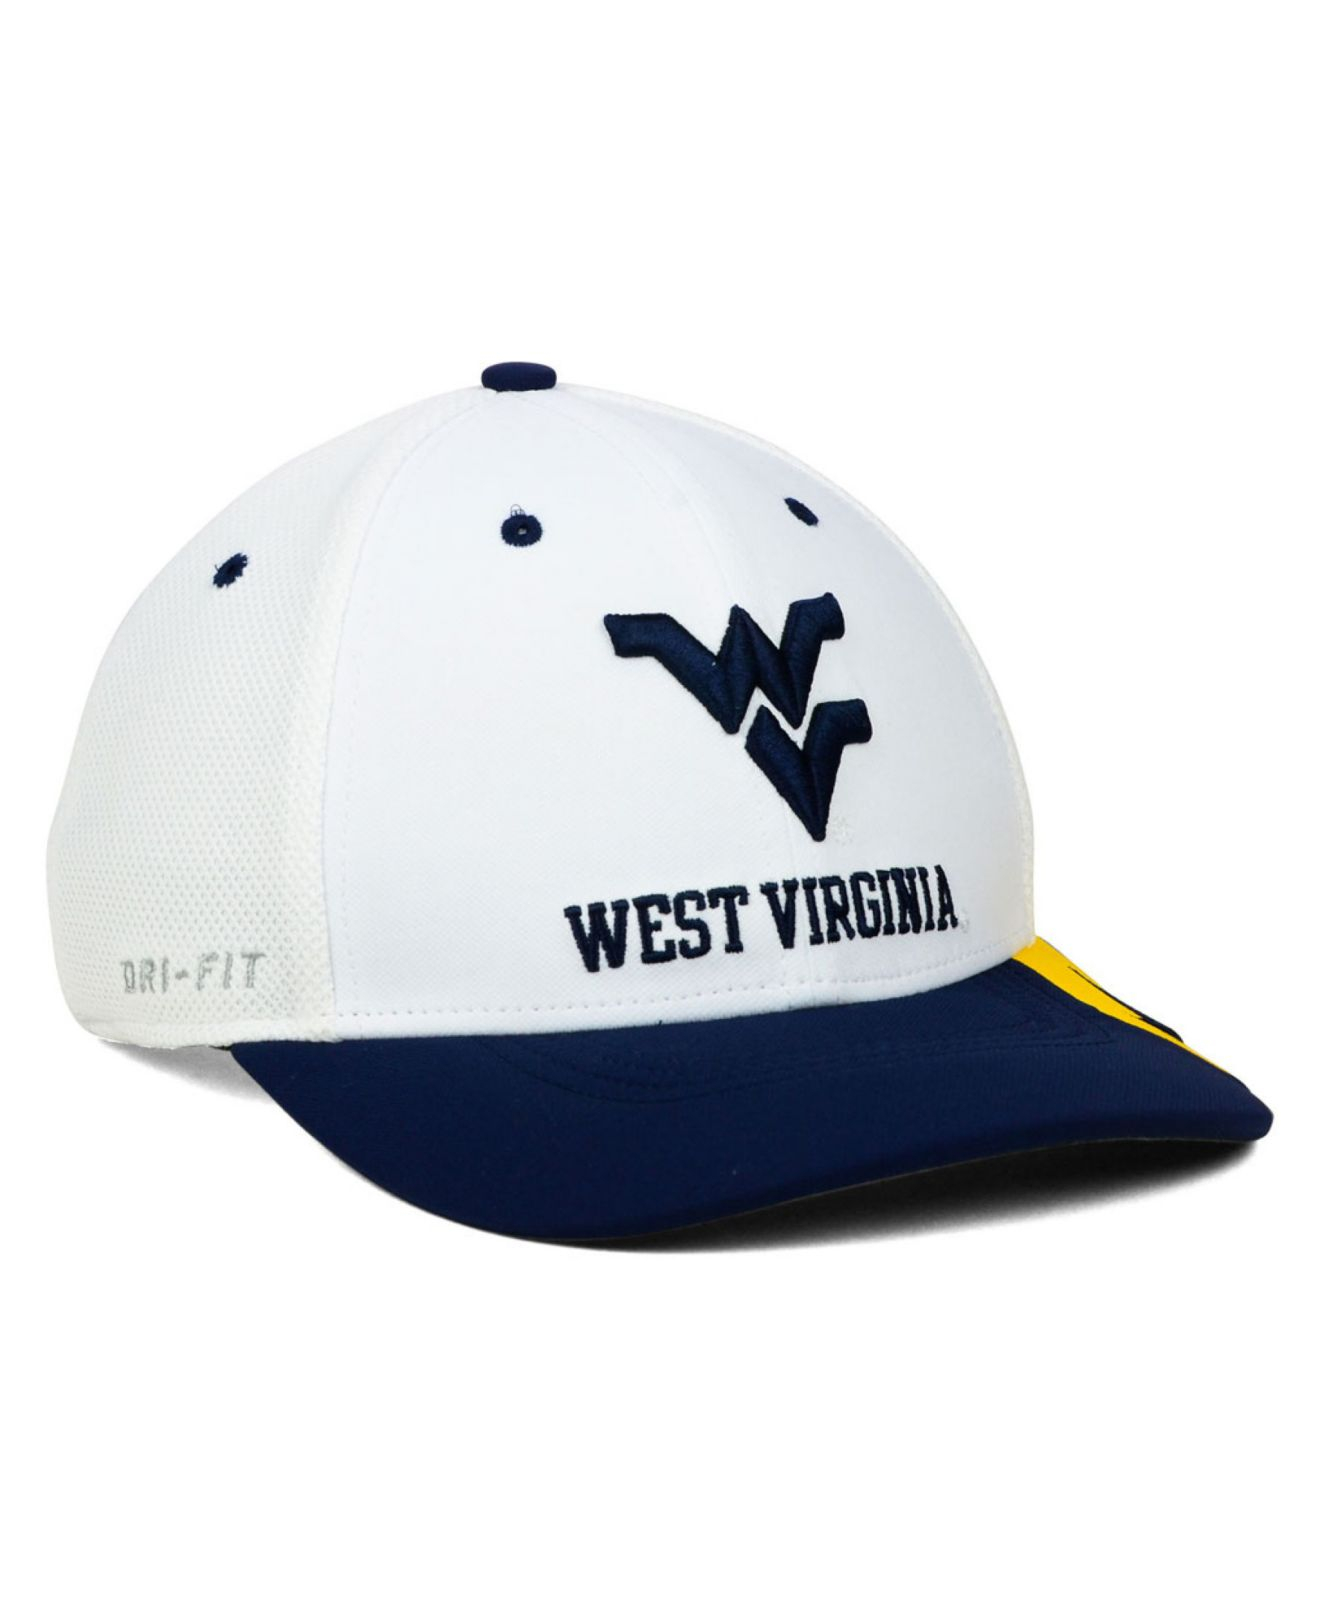 c239bc090f6 Lyst - Nike West Virginia Mountaineers Conference Swf Cap in White ...